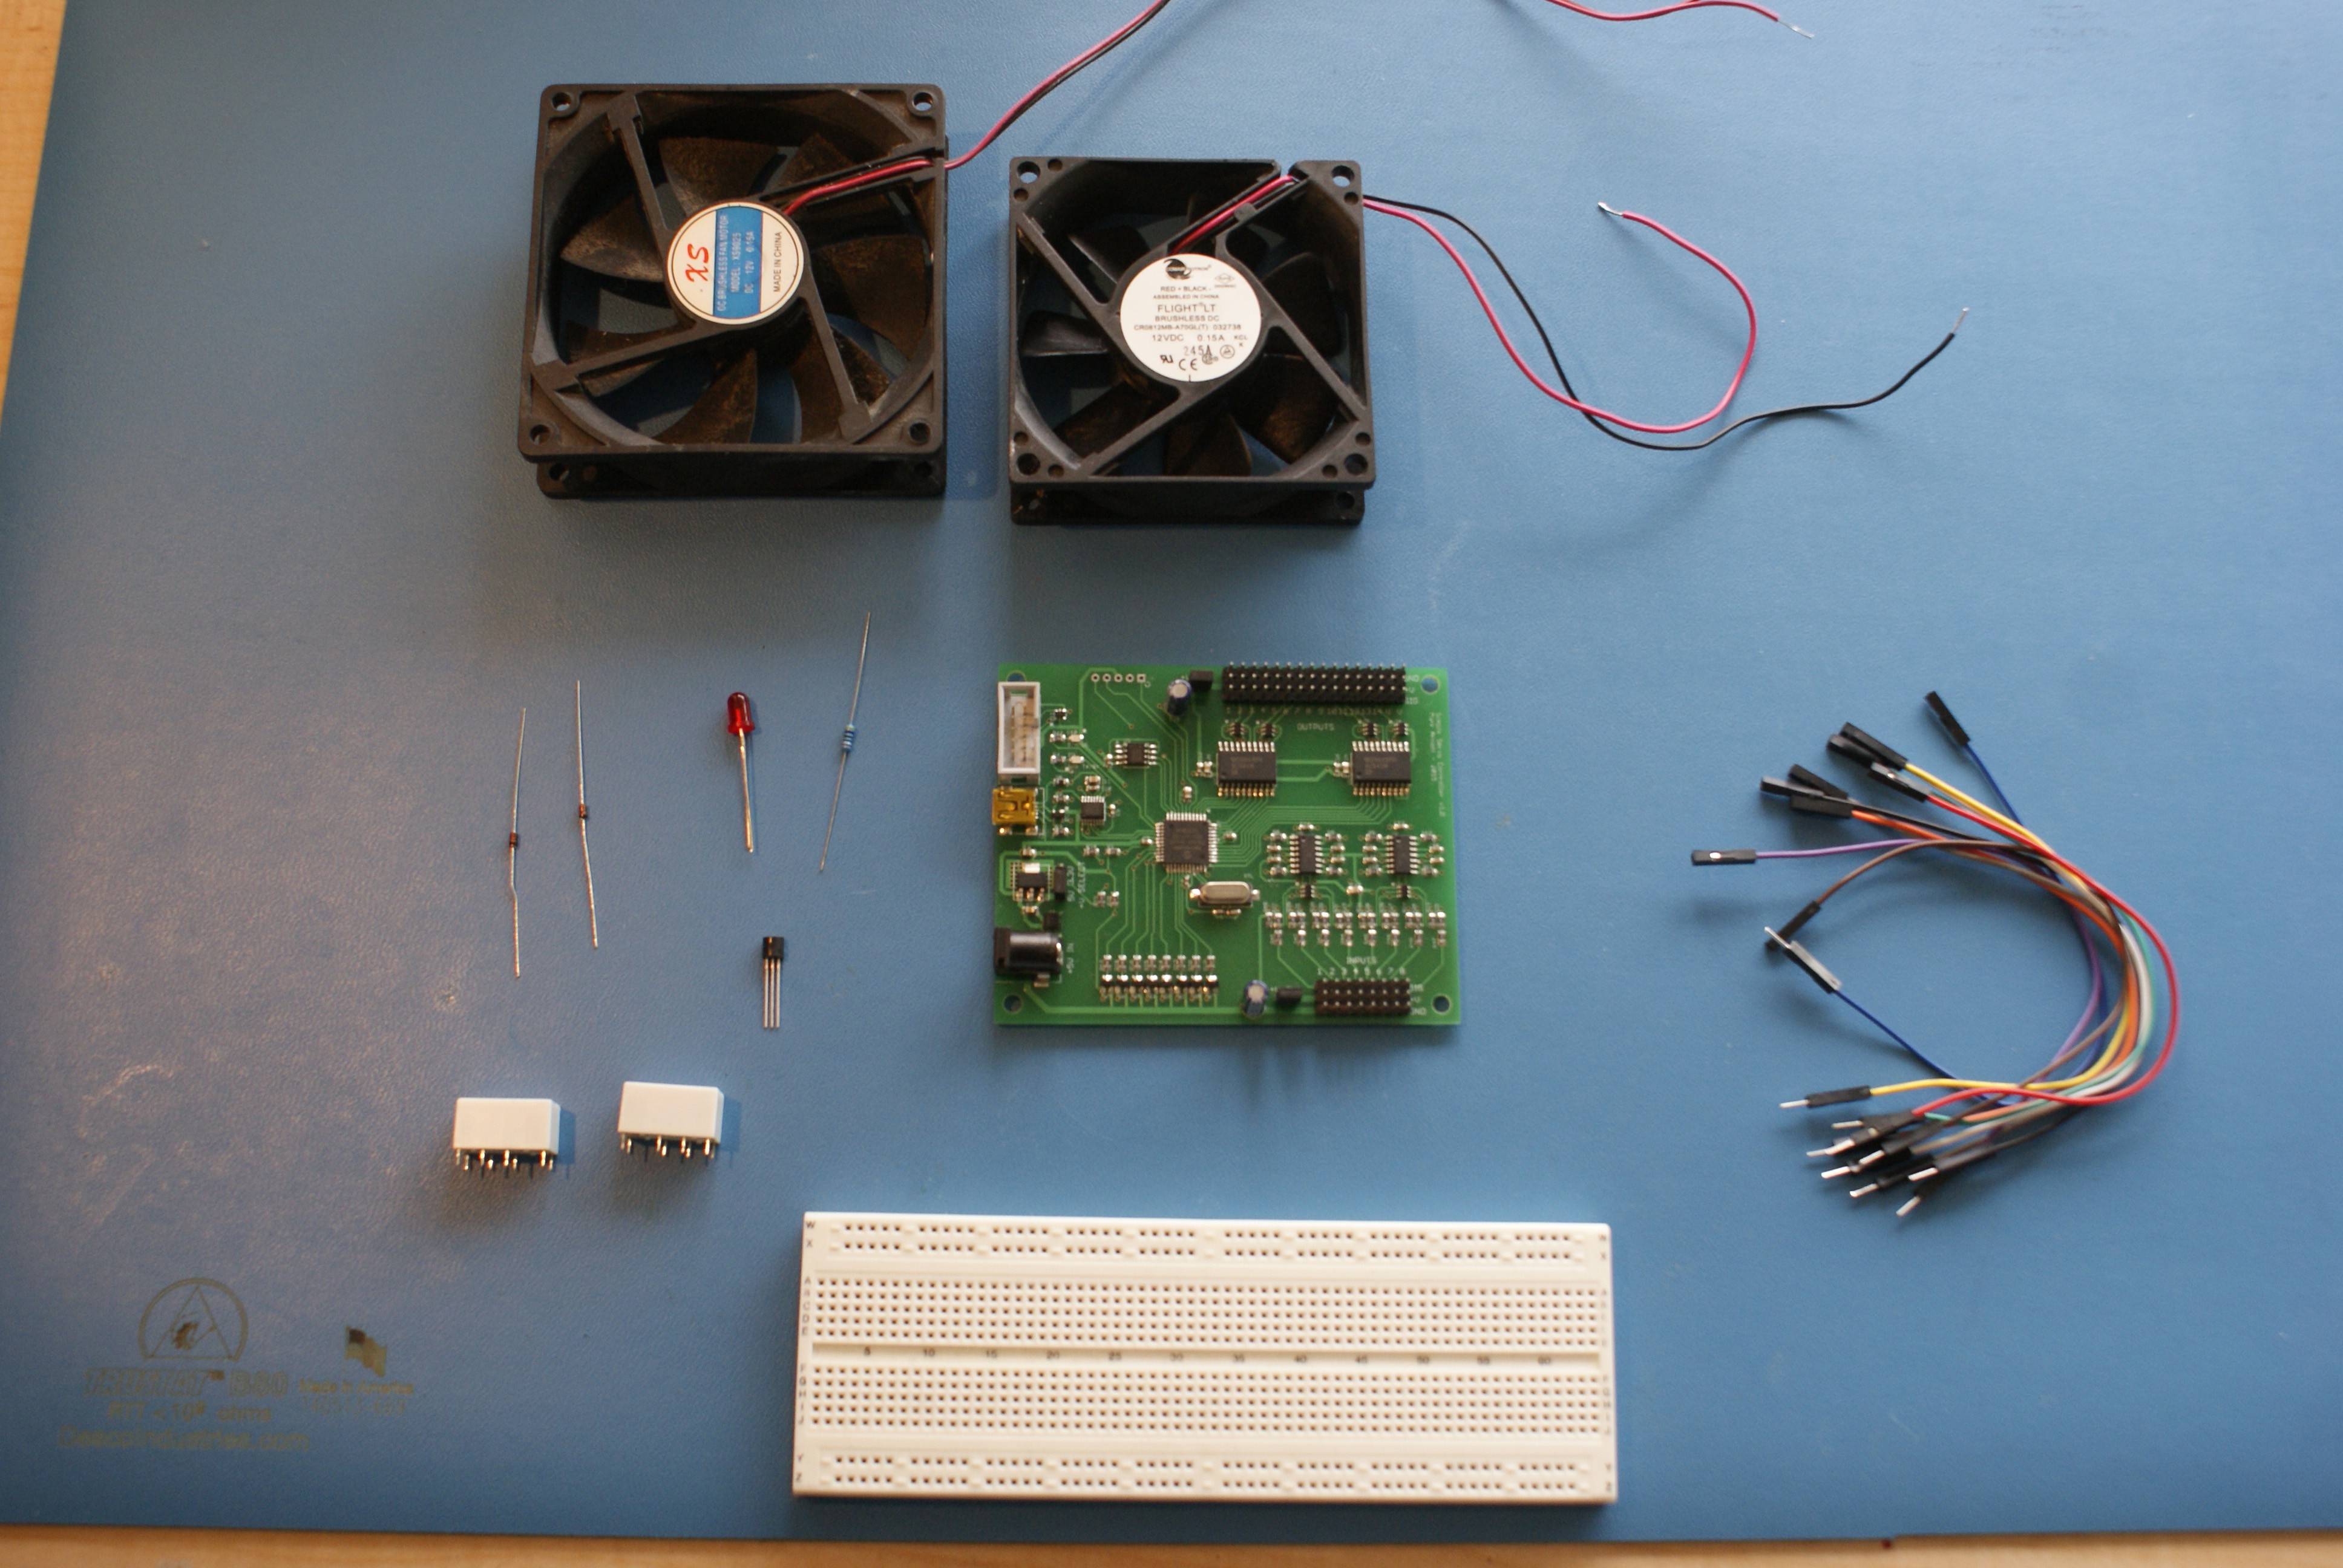 Instructions Temperature Controlled Fans Controled Fan 1 Will Turn On At 46c 2 60c To Have Some Hysteresis Both Off 30c